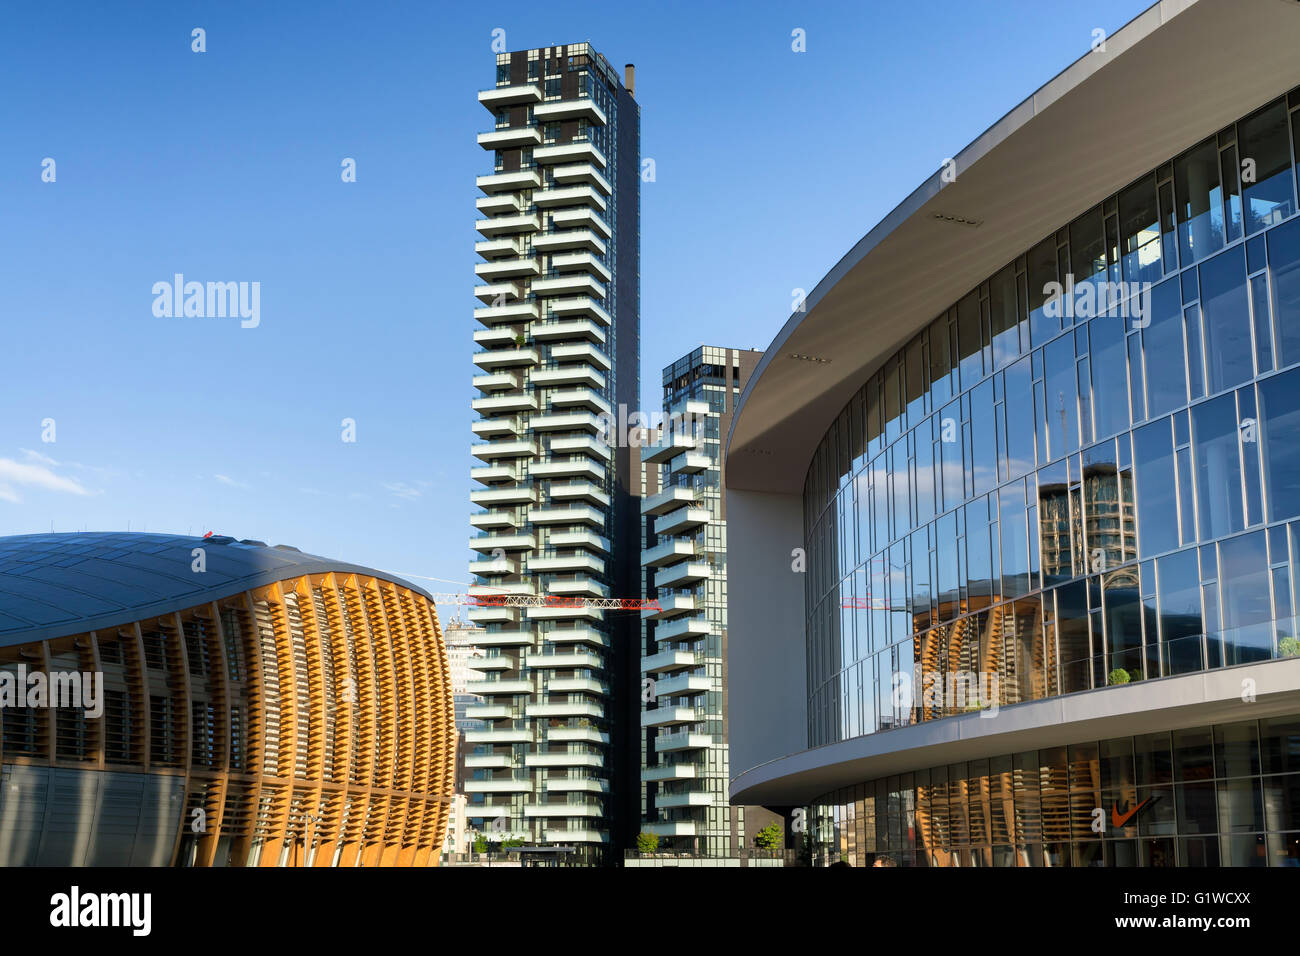 MILAN, ITALY - MAY 15, 2016: new Porta Nuova district skyscraper and commercial buildings from Gae Aulenti's - Stock Image